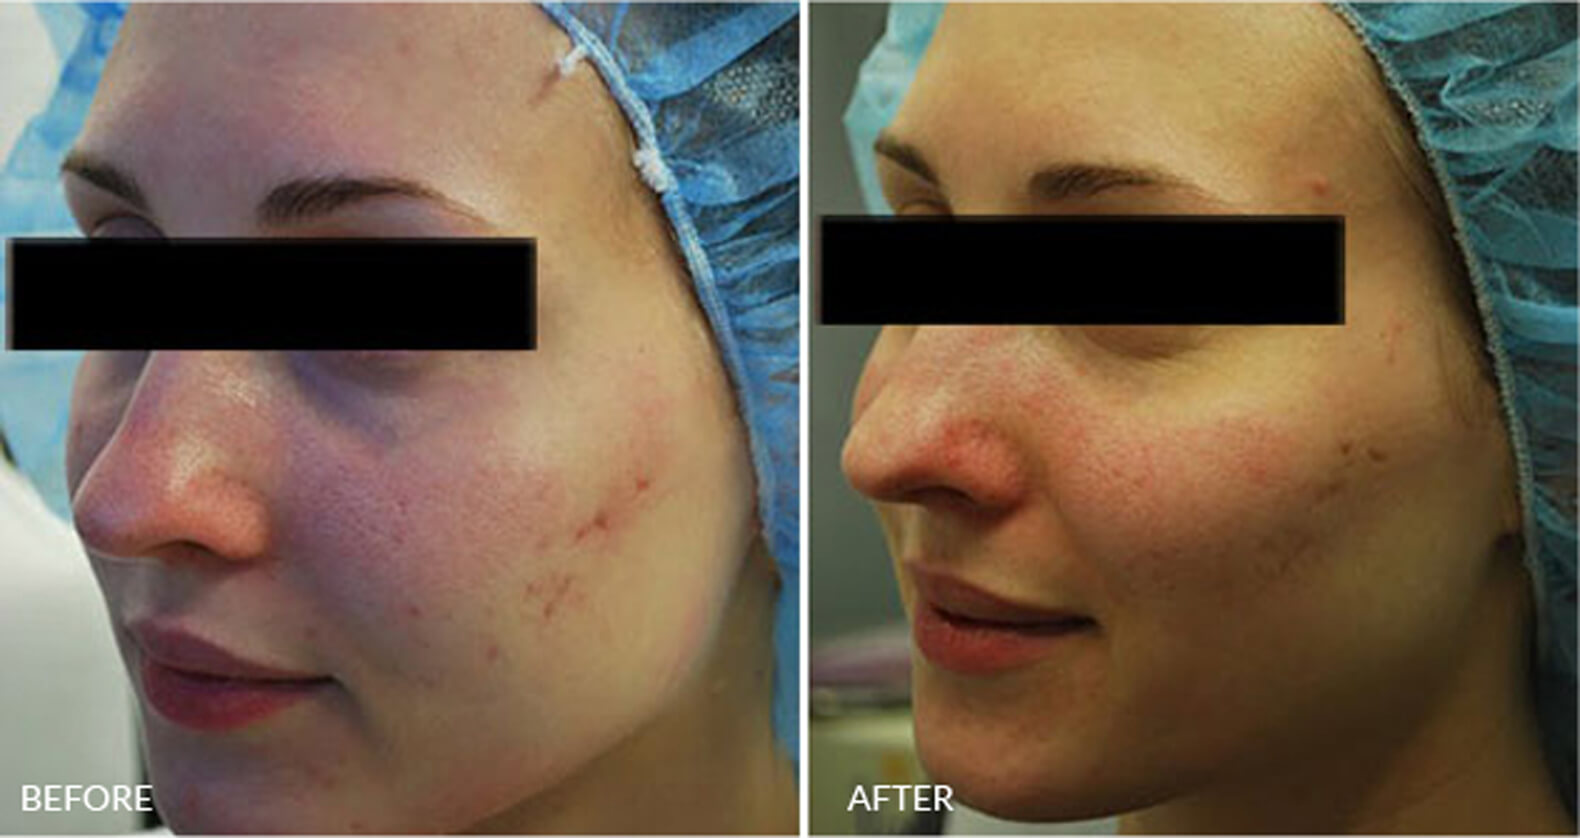 IPL Acne Scars Treatment